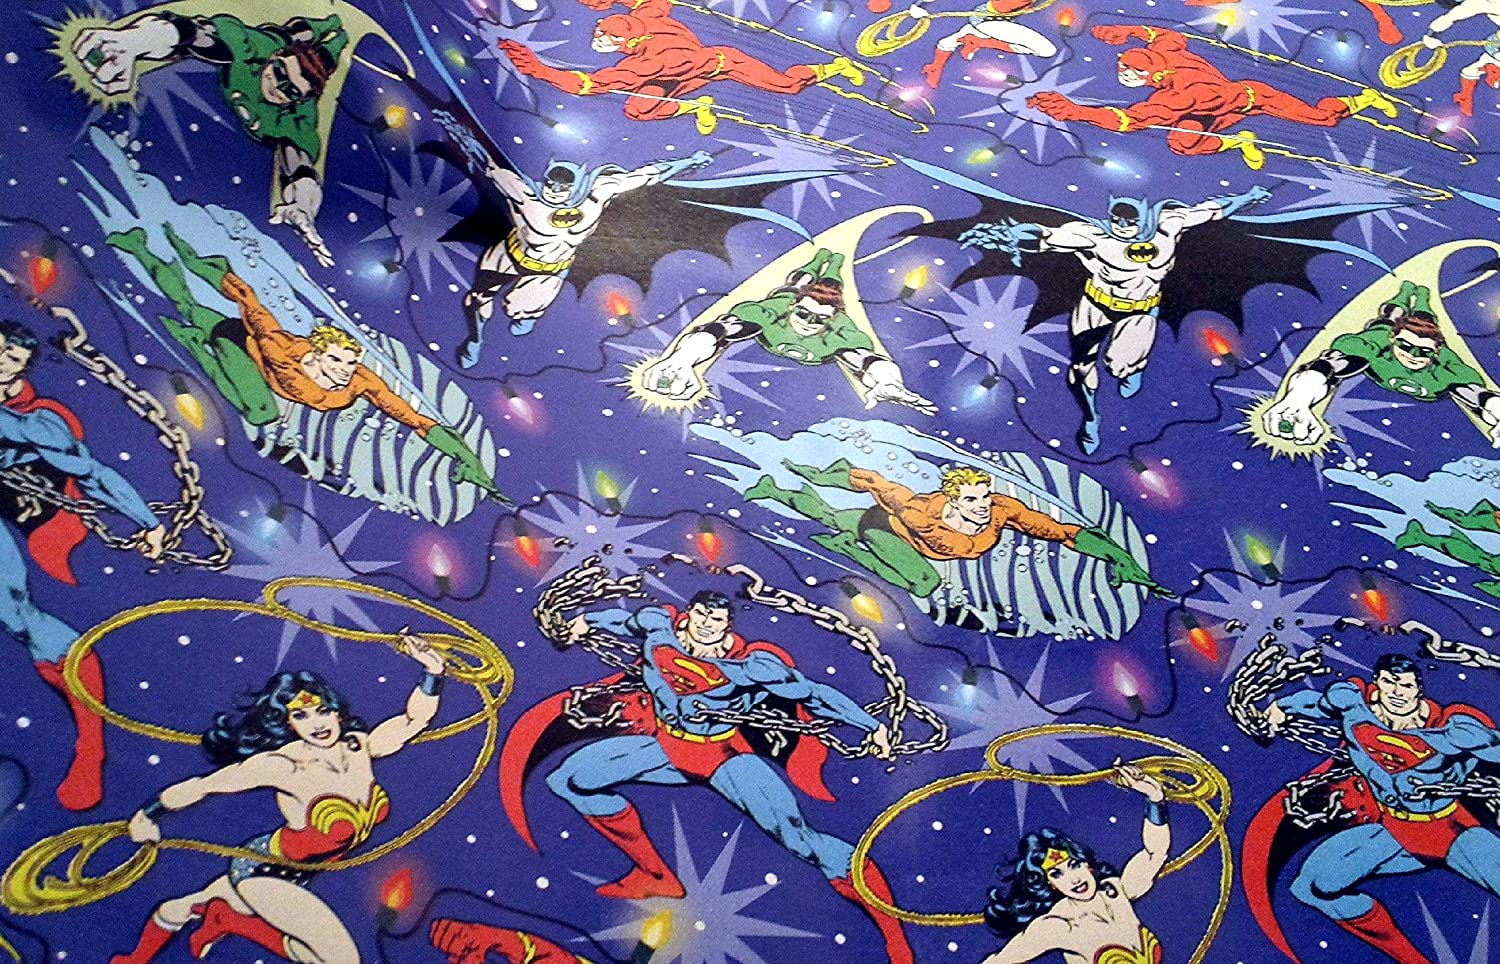 Amazon.com: DC Comics Justice League Christmas Gift Wrapping Paper ...